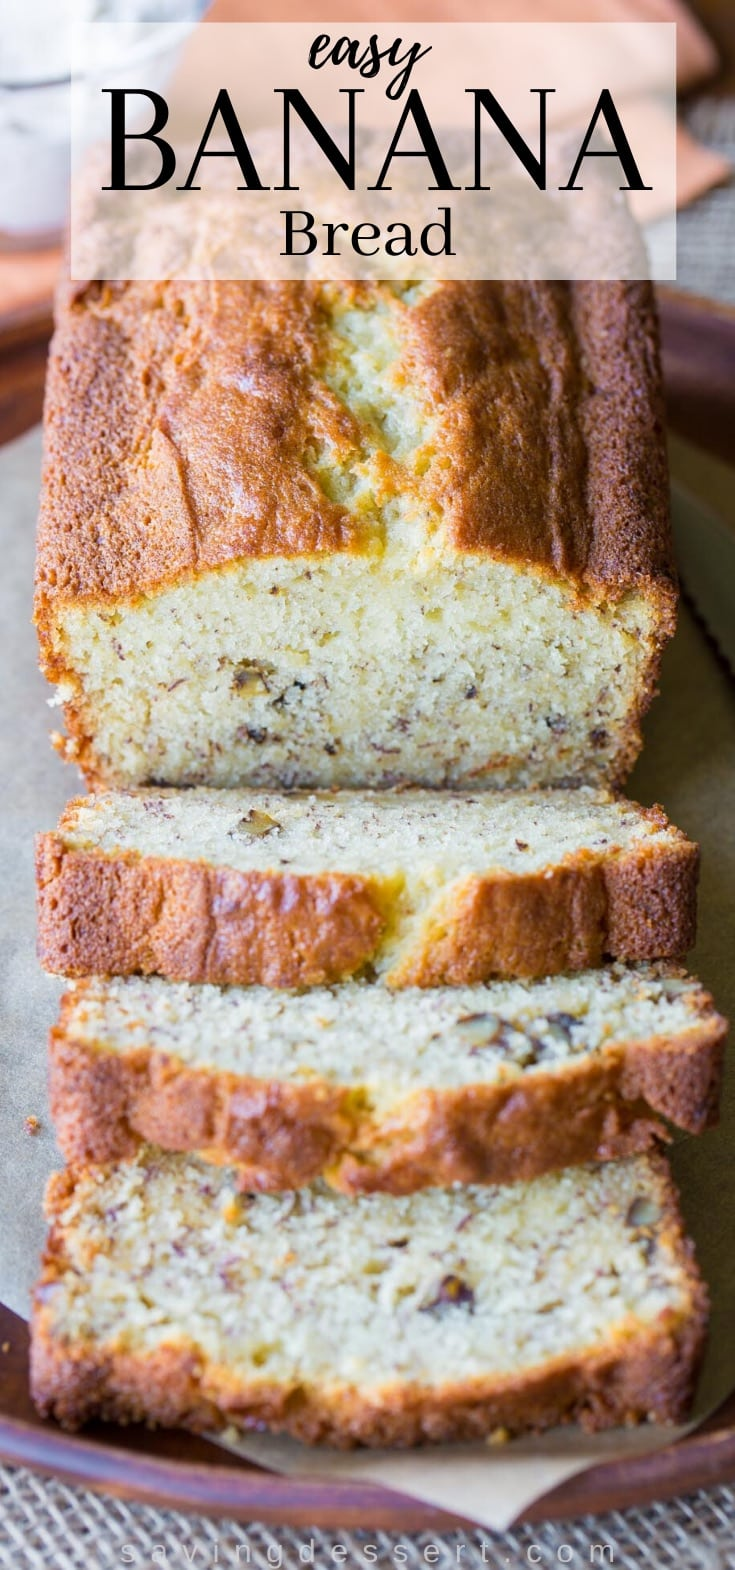 A sliced loaf of banana bread with walnuts